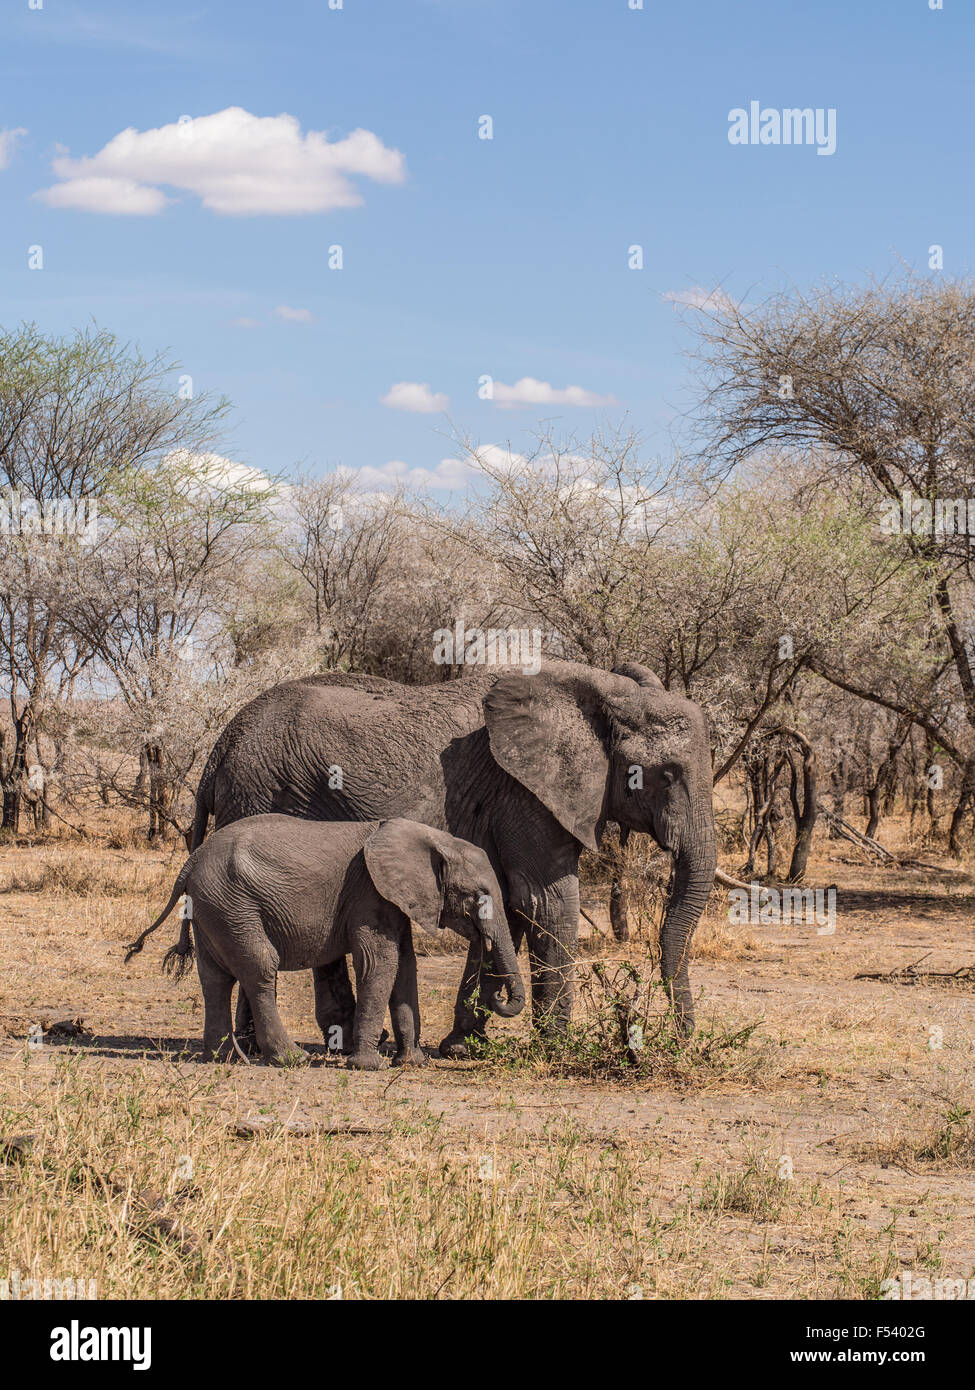 Mother elephant with one tusk, with her baby in Tarangire National Park in Tanzania, Africa. Vertical orientation. - Stock Image